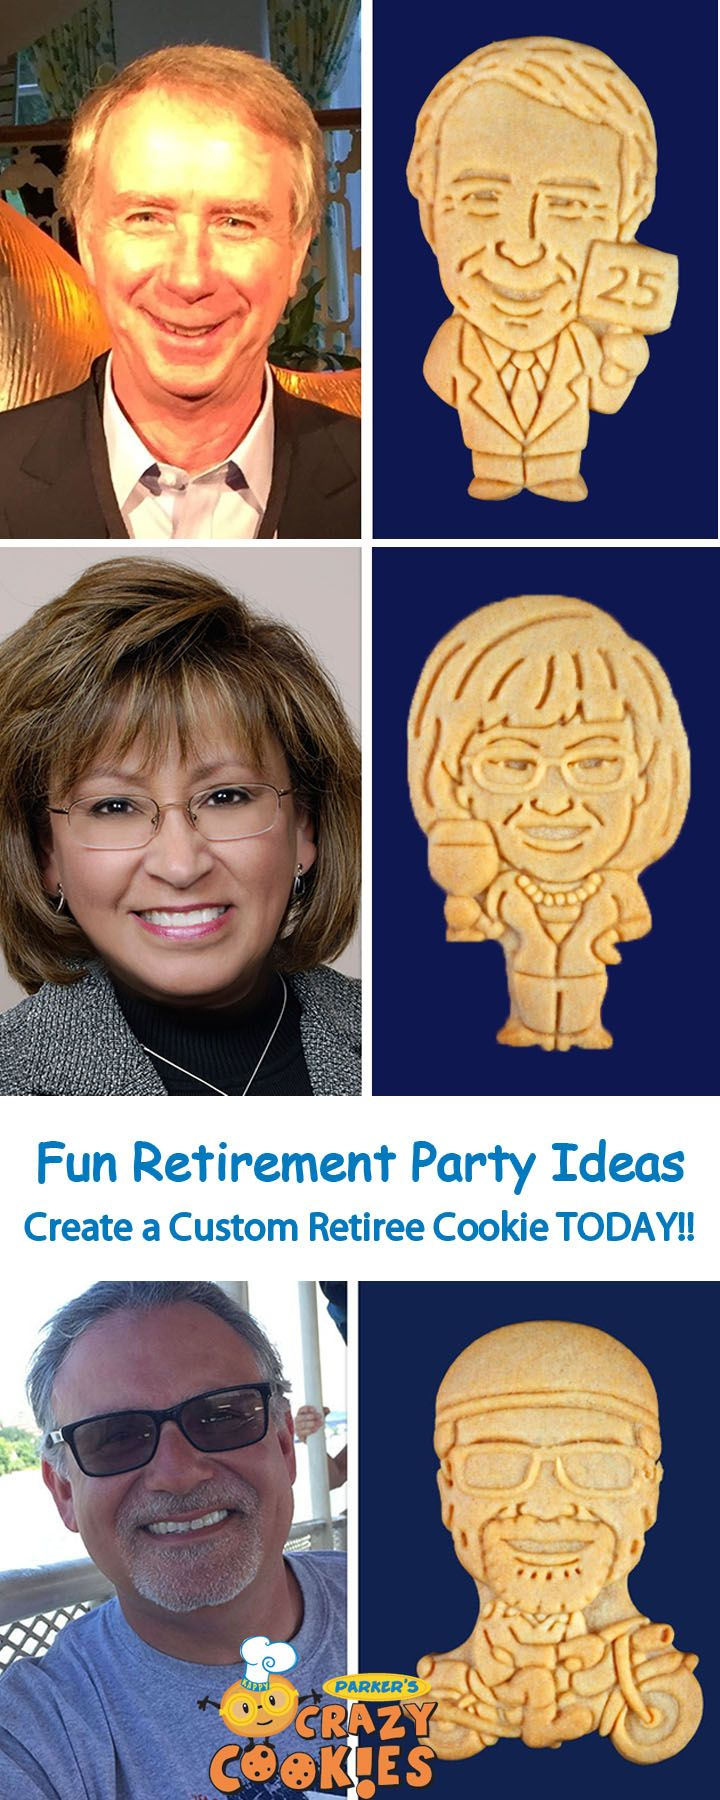 Retirement Party Ideas!! See your retiree as a Cookie!! Create your very own Retirement Party Favor Today! Discover the magic at www.parkerscrazycookies.com